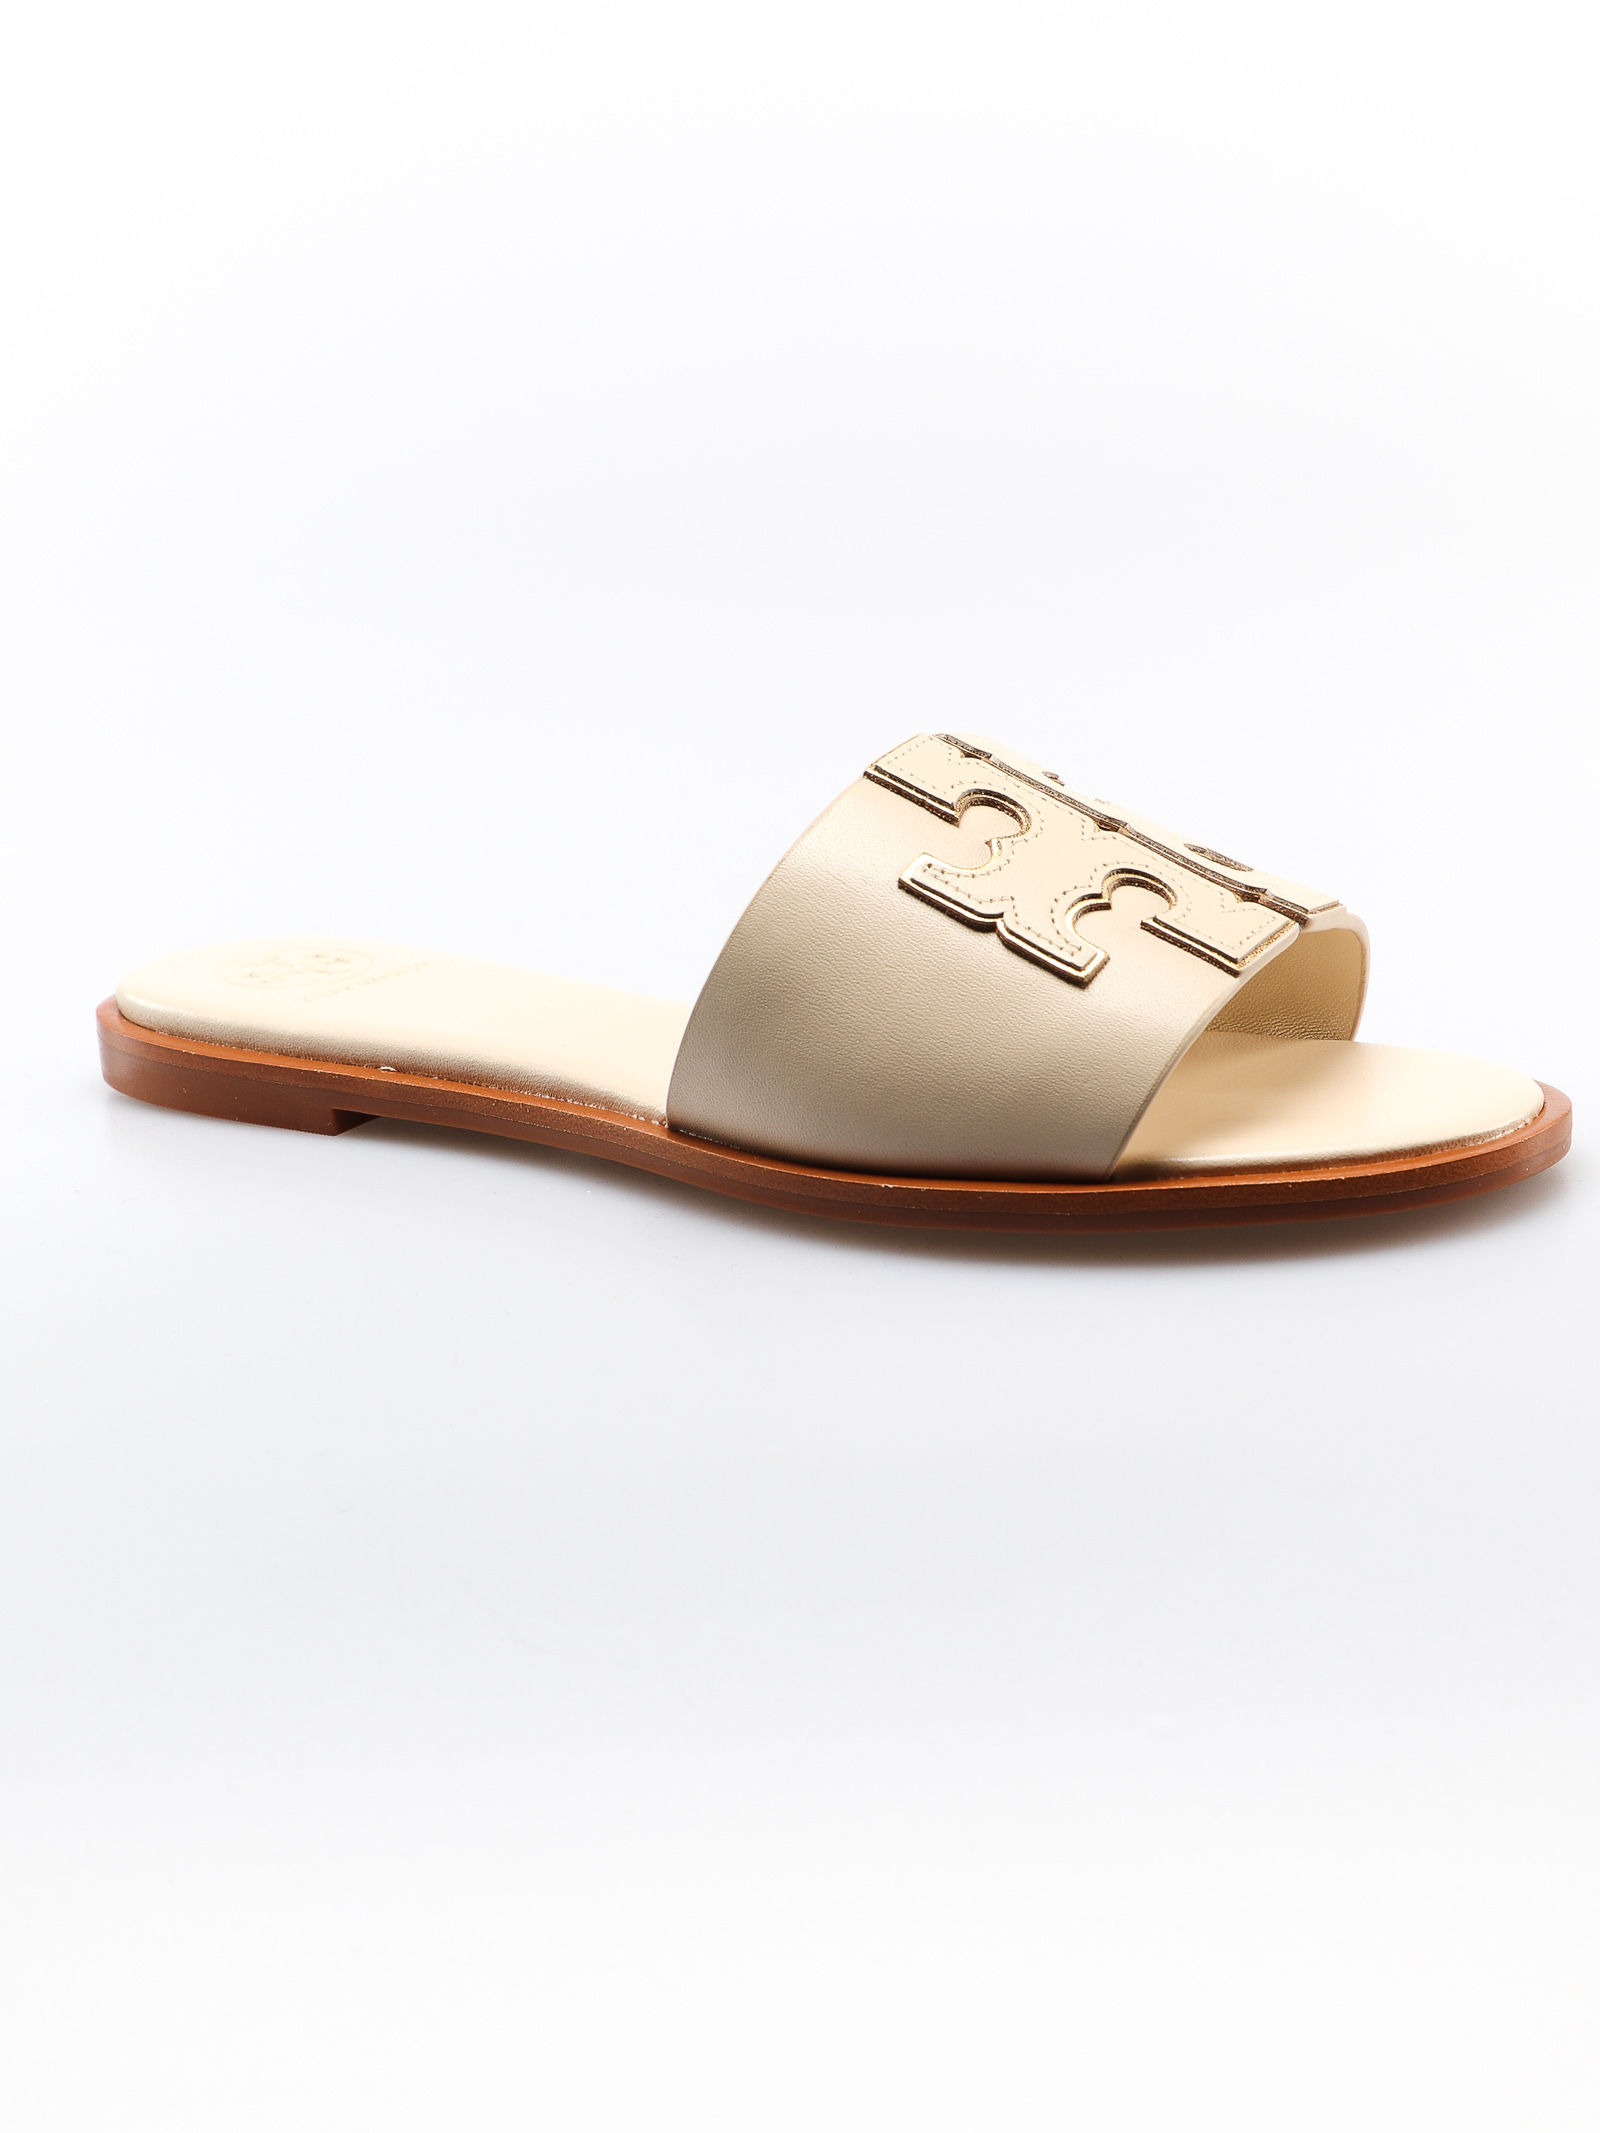 tory burch ines sandals